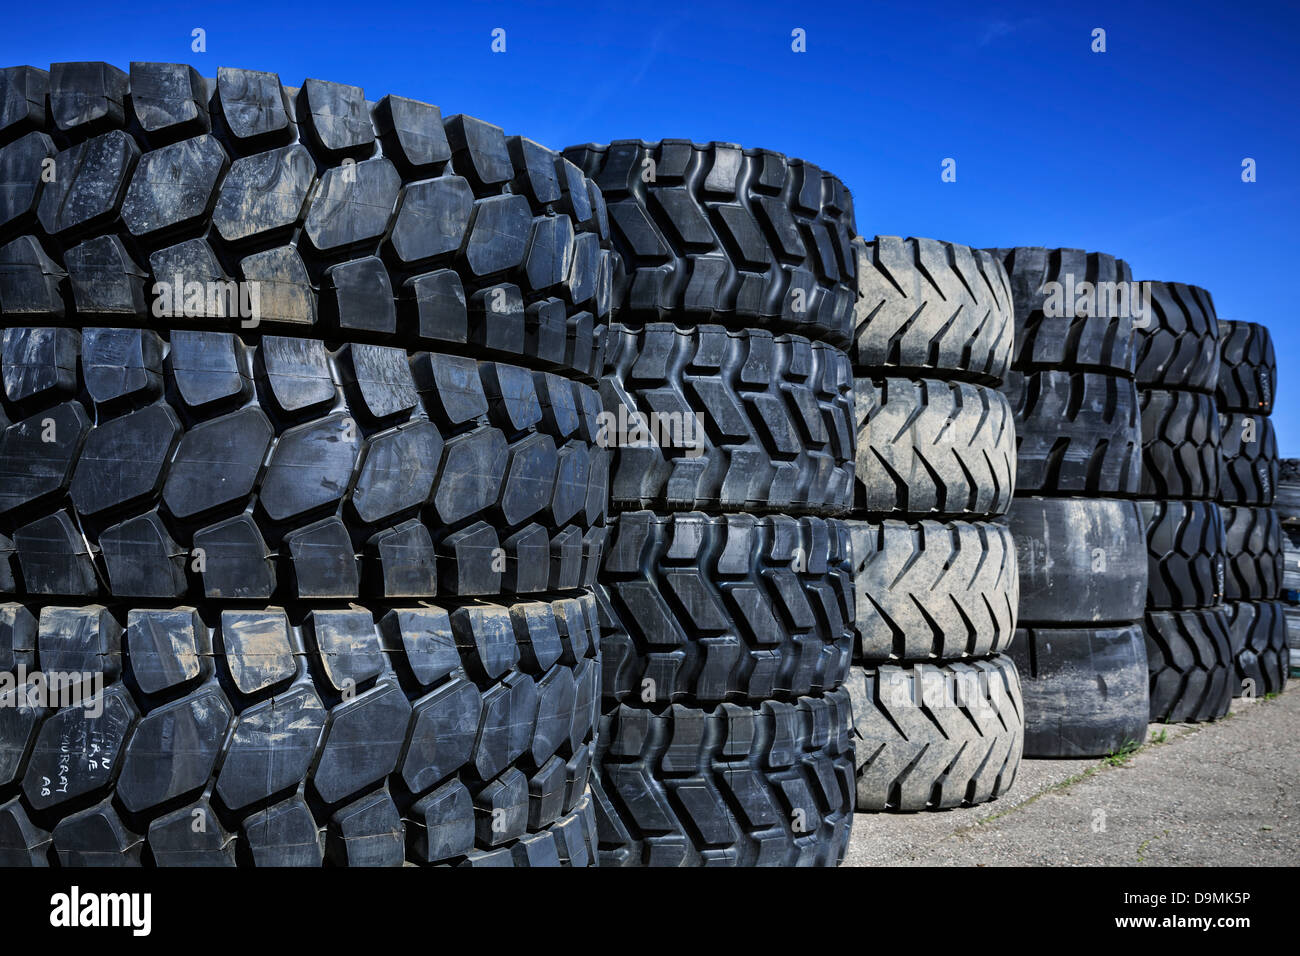 Large rubber tires, stacked up - Stock Image